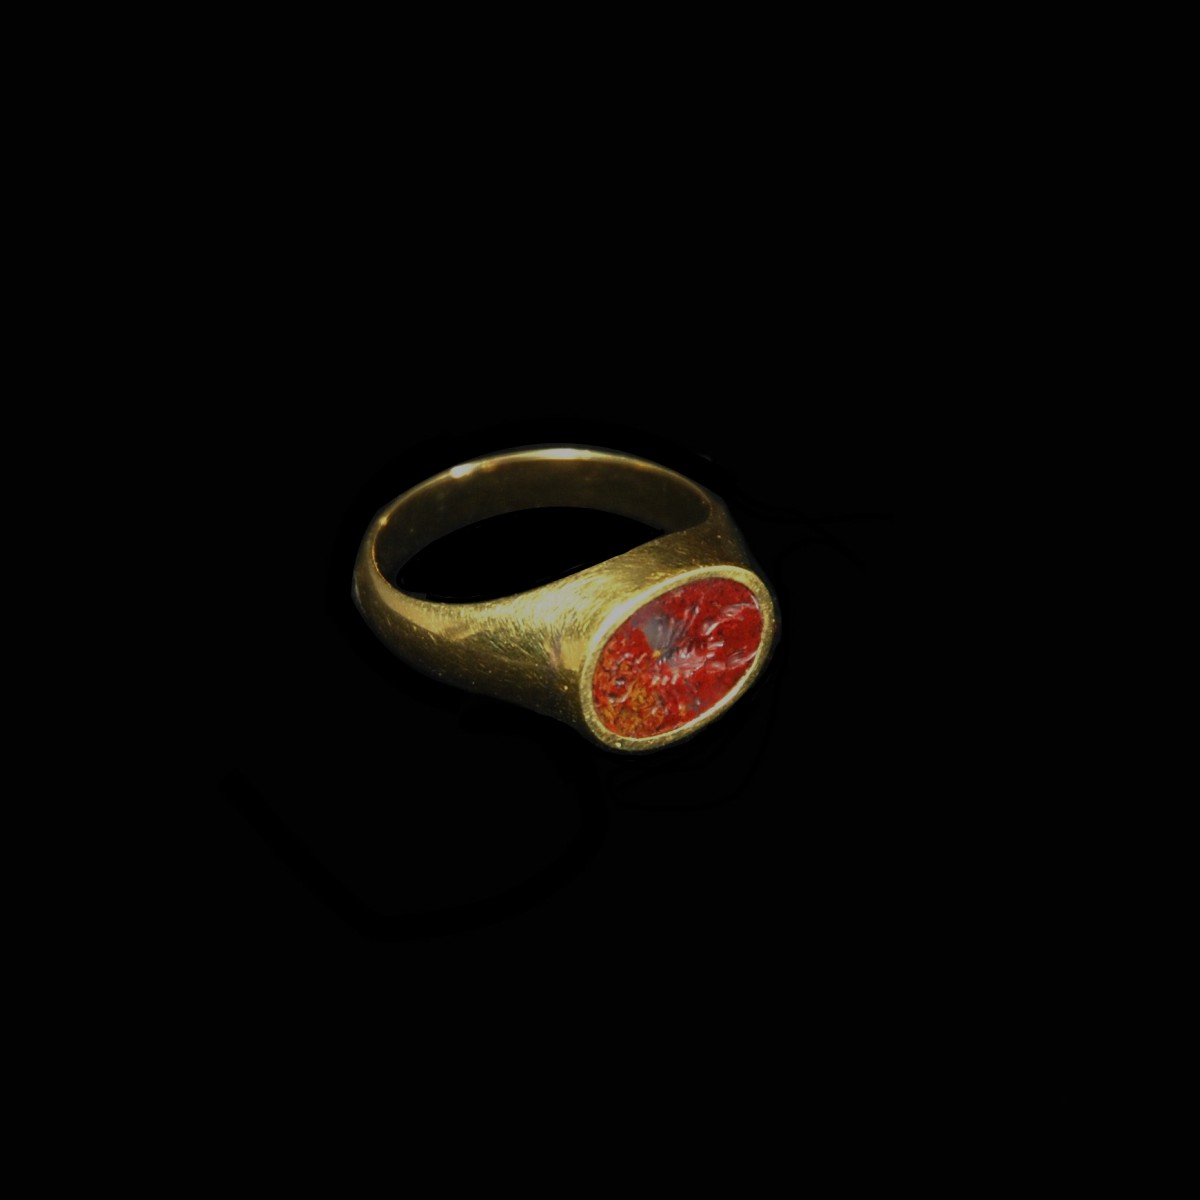 Goldring with Roman scorpion intaglio